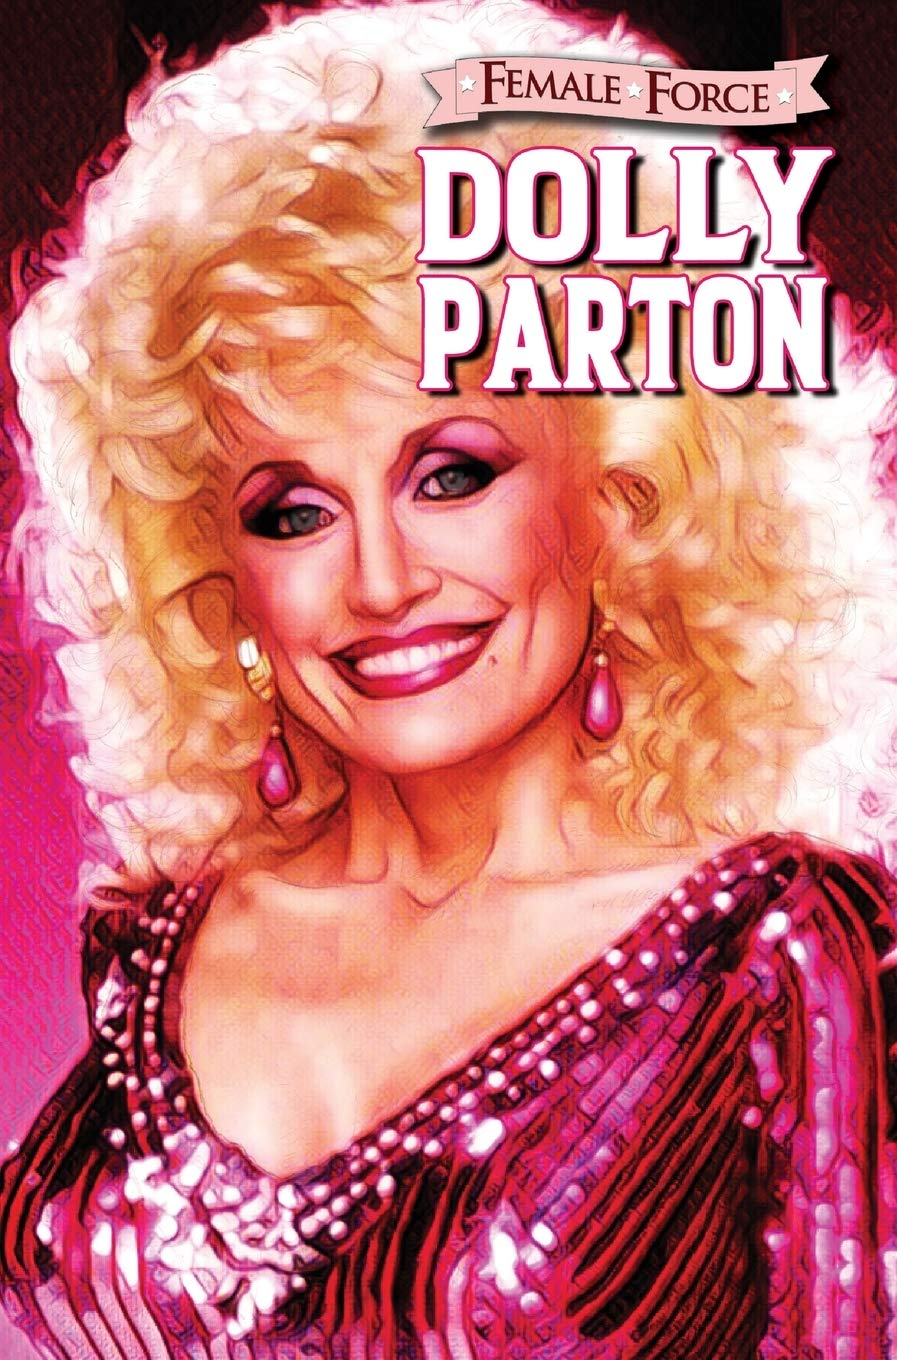 female force dolly parton comic book